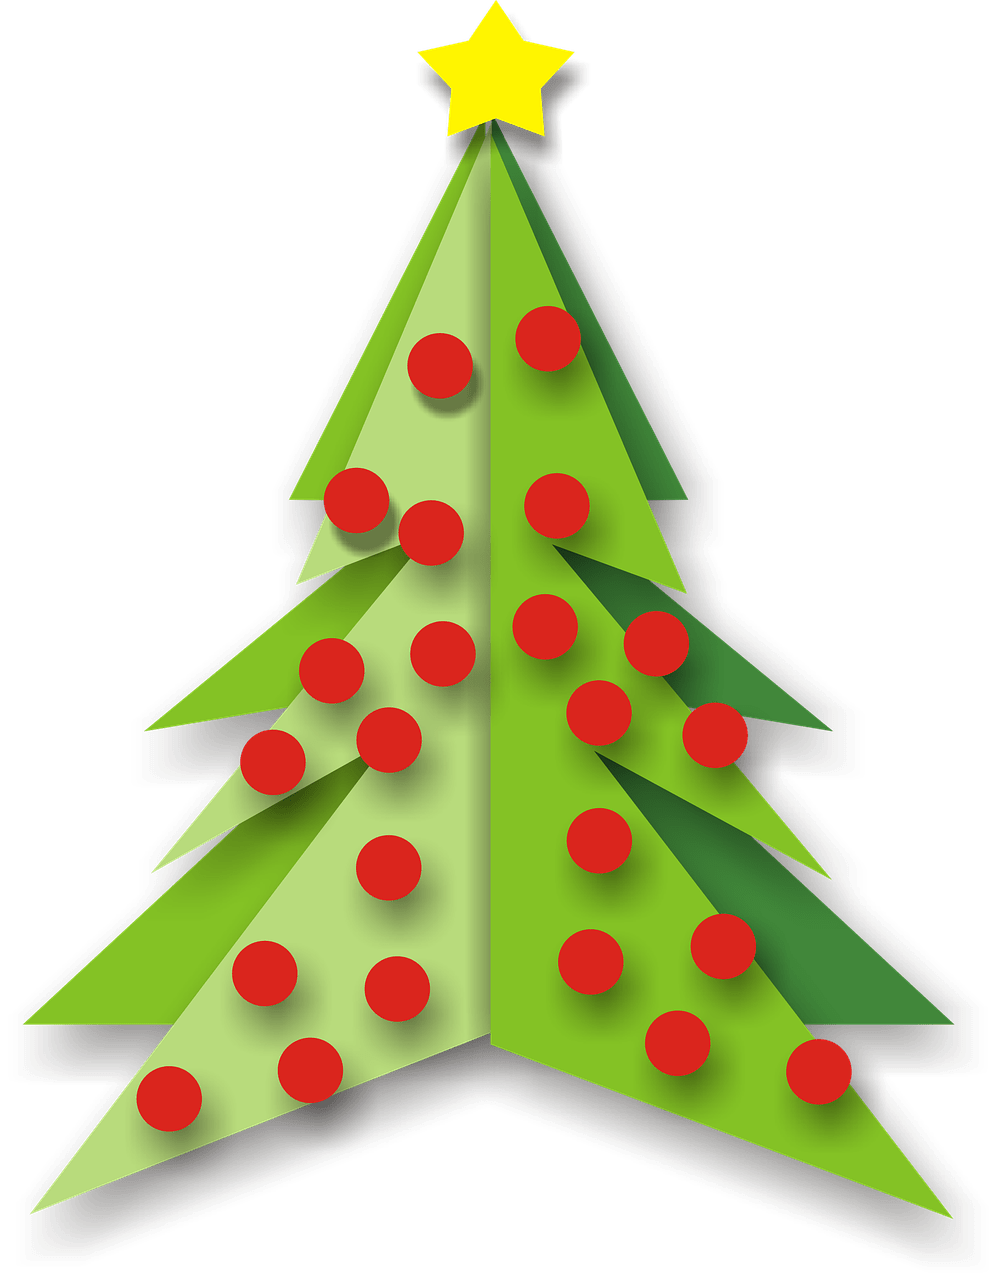 Arboles navide os clipart svg library download Árbol de Navidad con Bolas Rojas Clipart PNG transparente - StickPNG svg library download